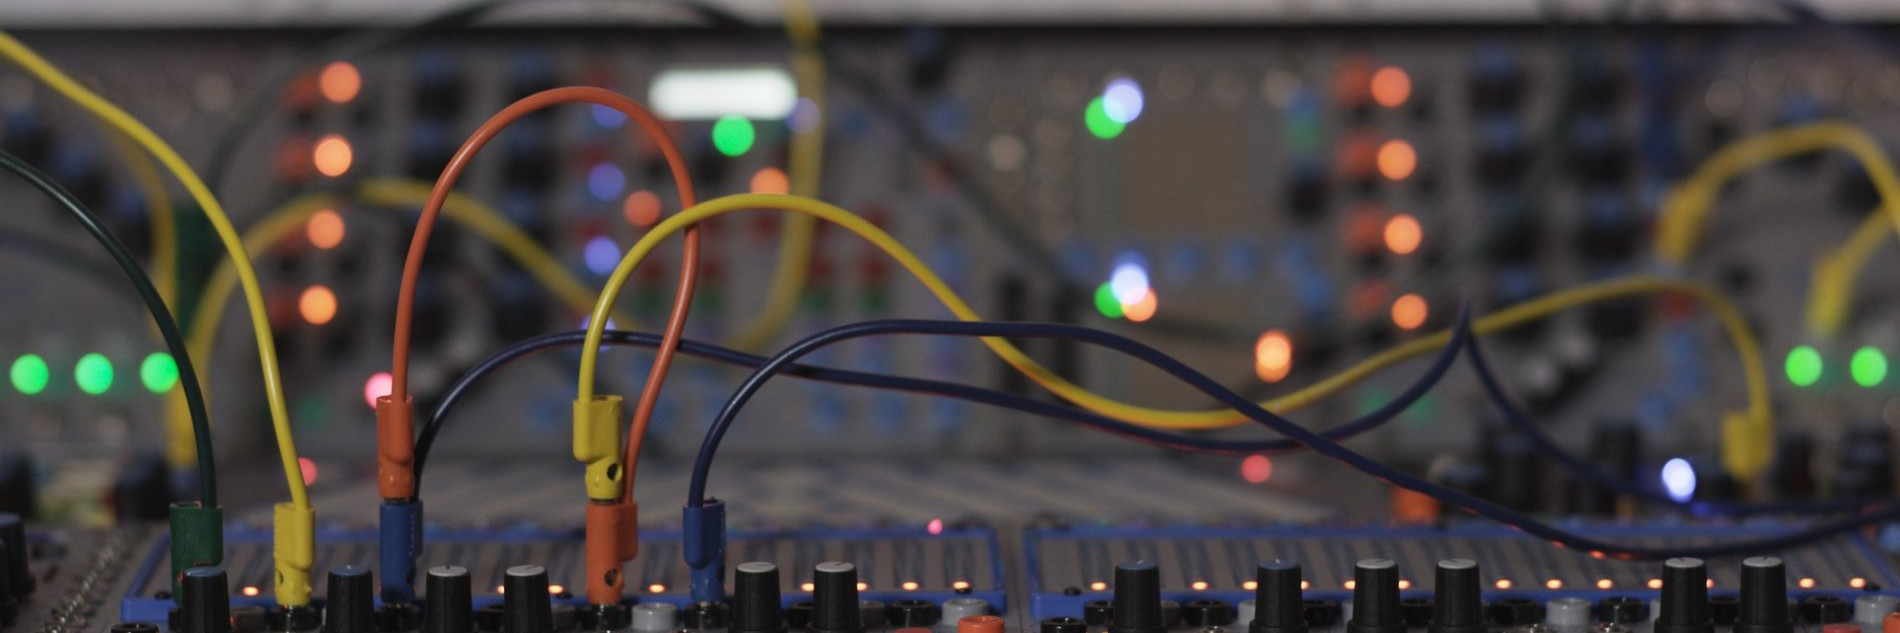 The Bubbling Potential of Live Synthesisers